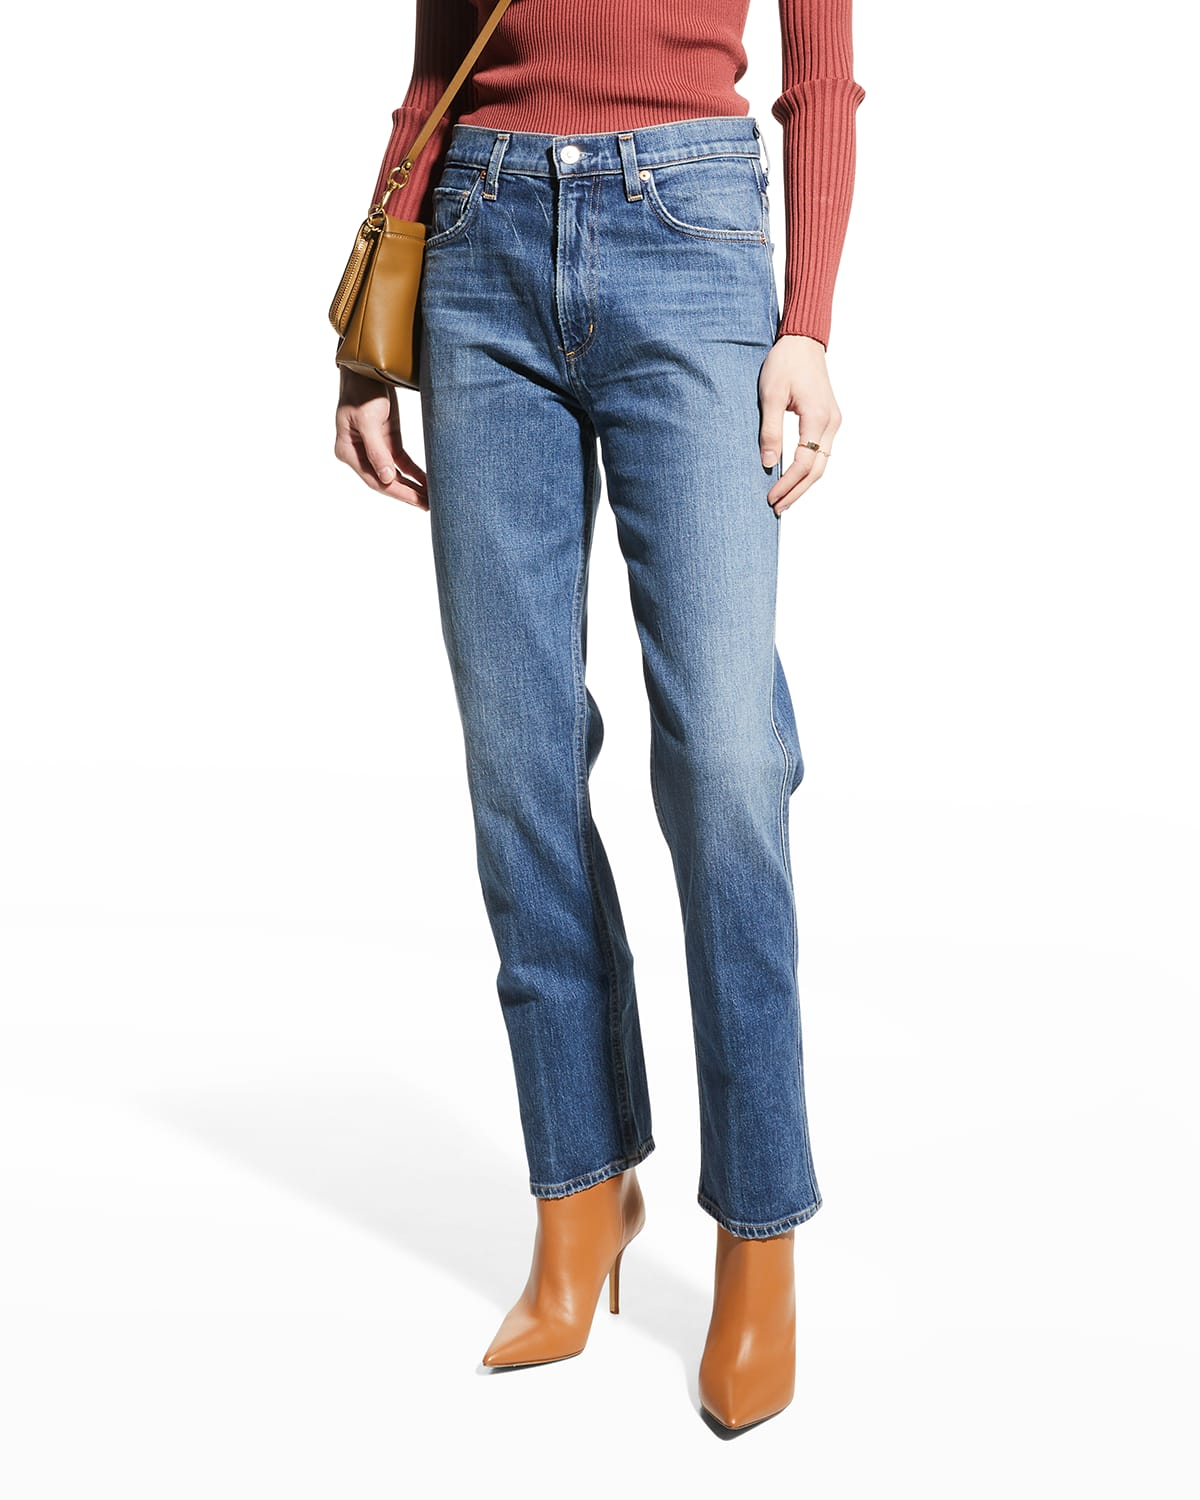 Daphne High-Rise Stovepipe Jeans